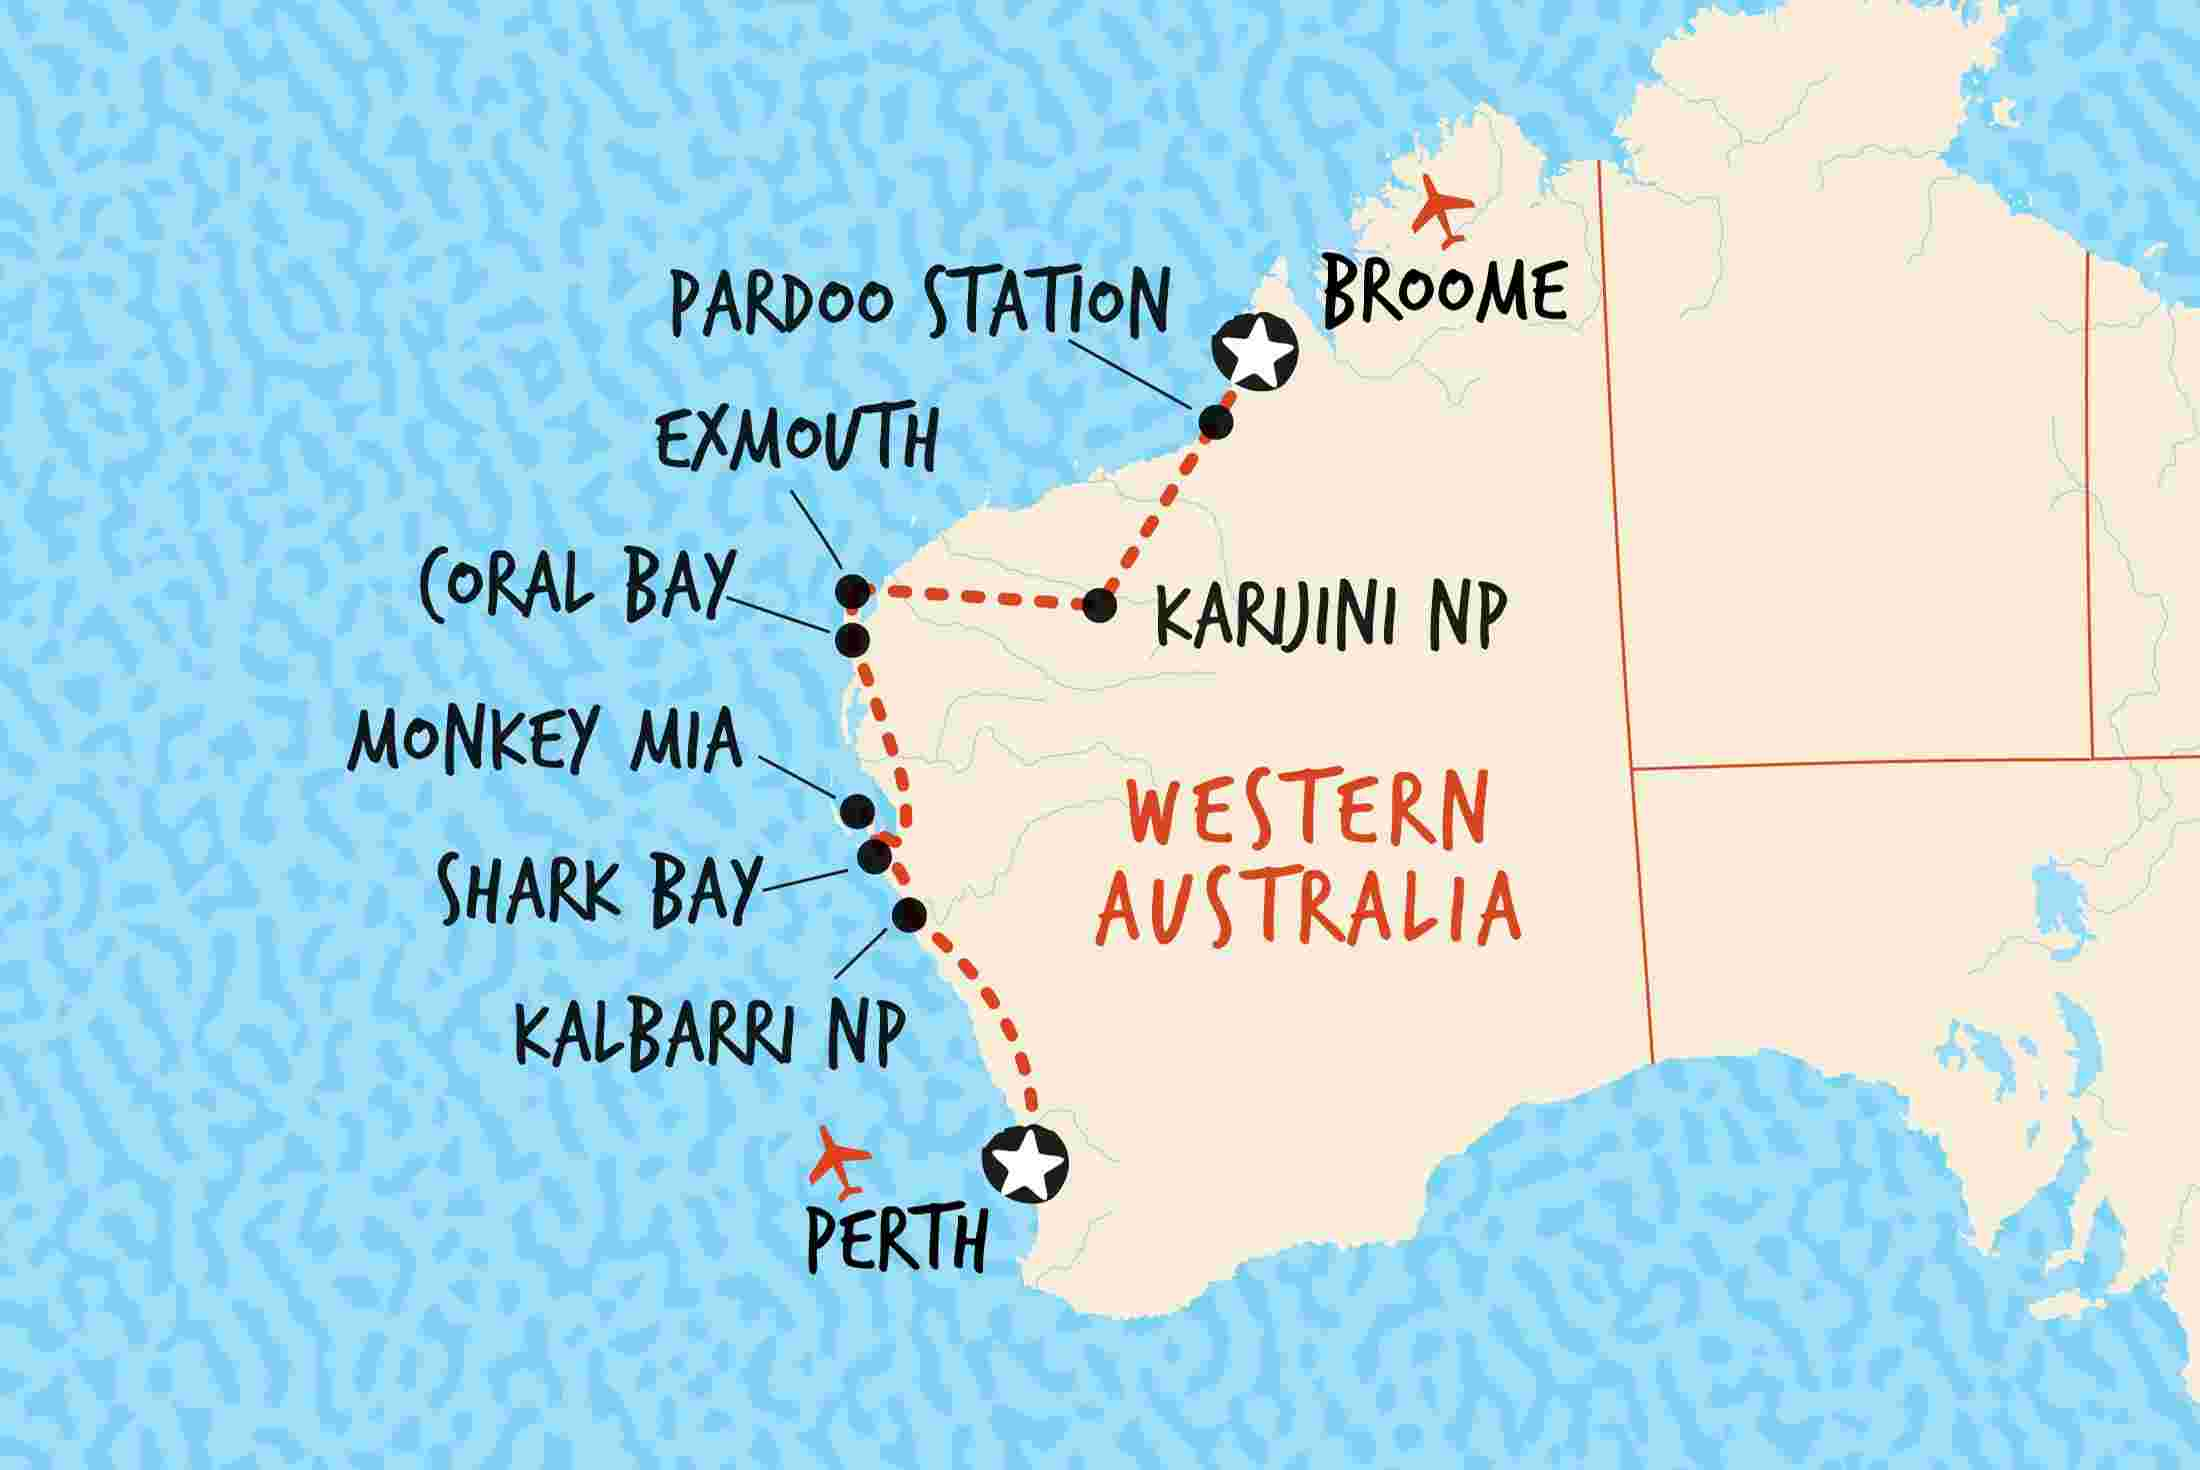 Australia West Coast Map.Broome To Perth Overland Overview Broome To Perth Overland